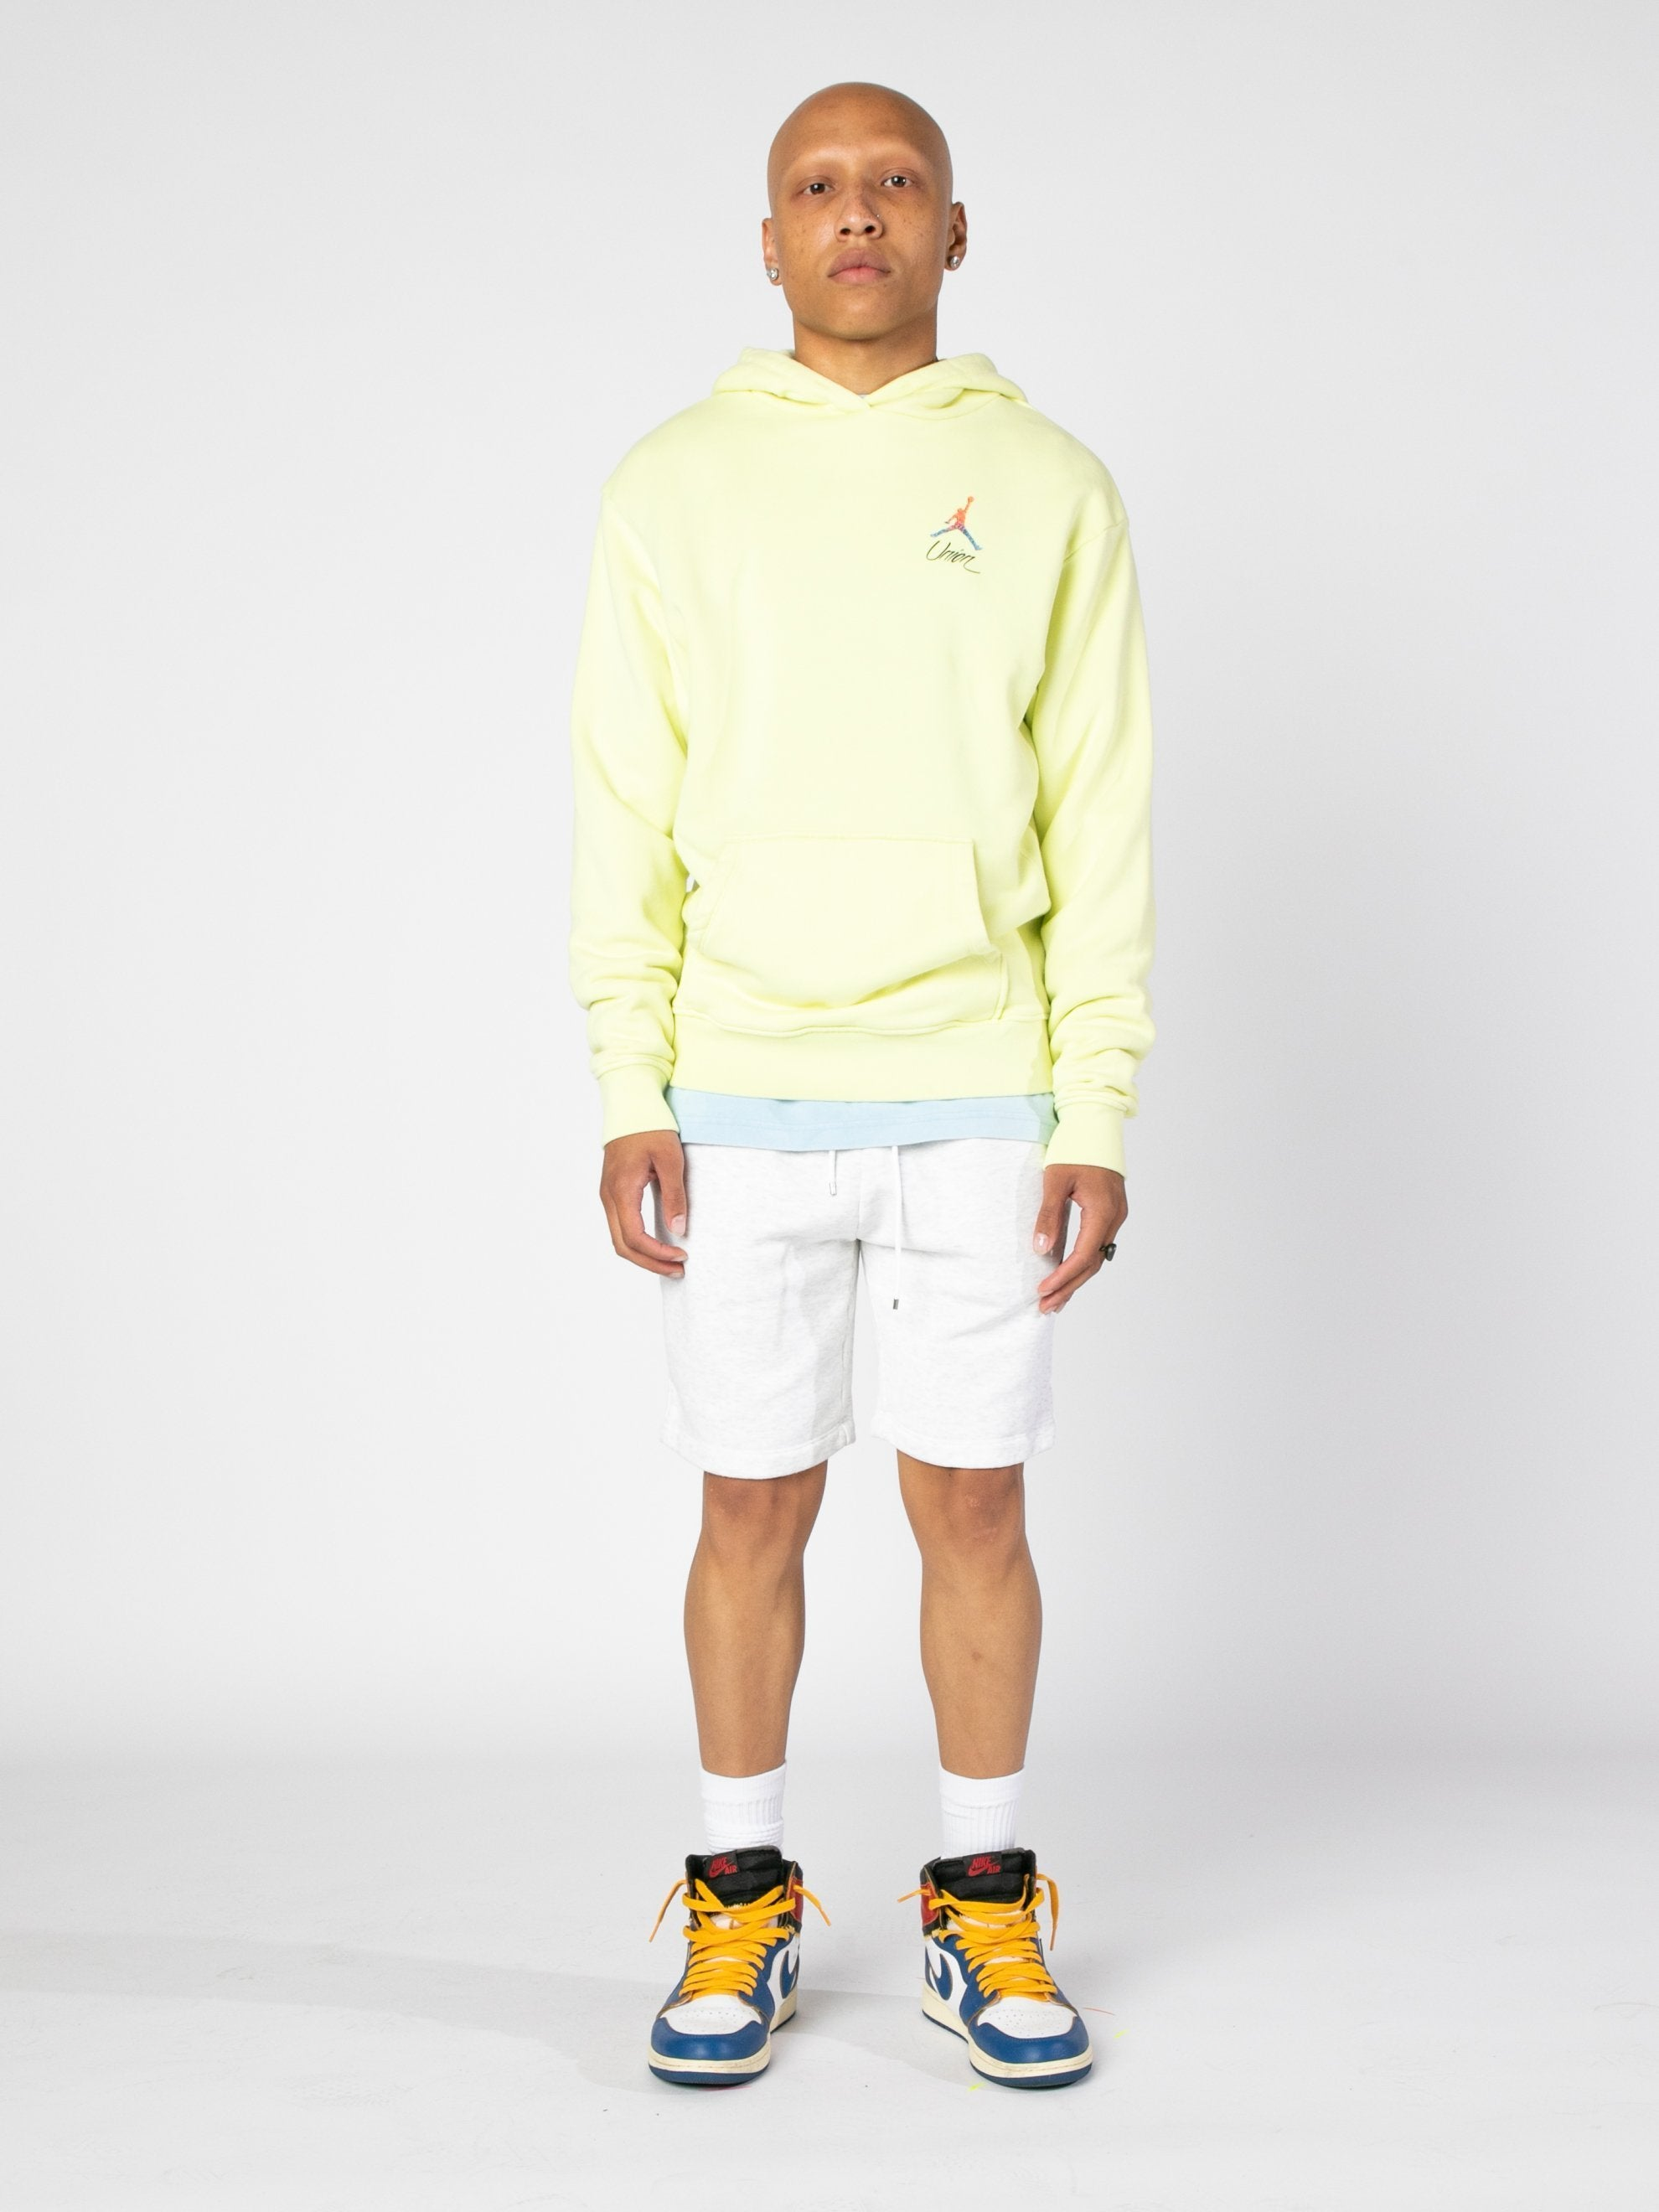 Luminous Green (Pale Yellow) Jordan x Union 2.0 PO Hoody 3